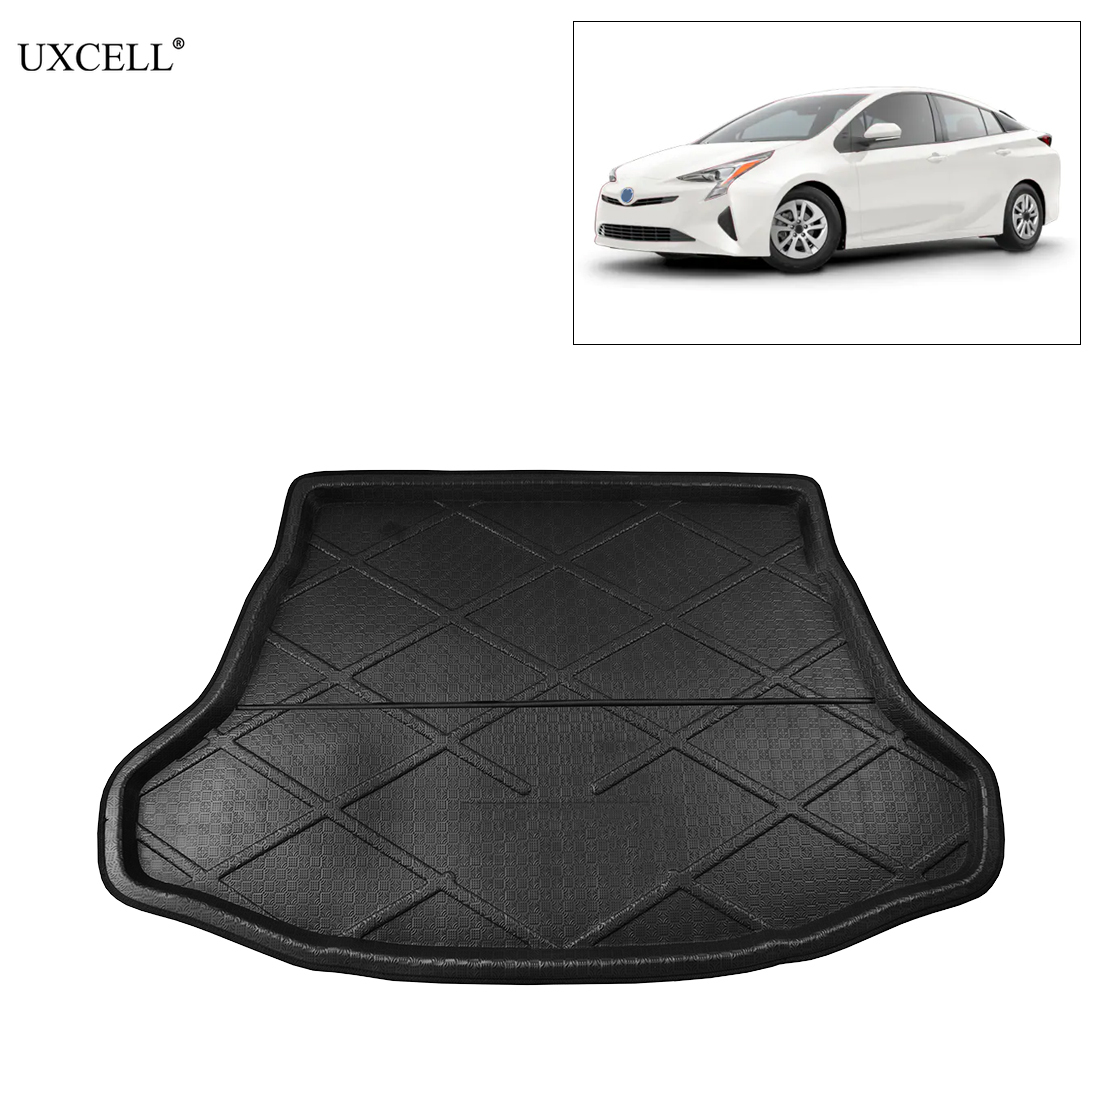 Uxcell Car Rear Trunk Floor Mat Cargo Boot Liner Carpet For Toyota Prius Hatchback 2016 2003-2010 For Camry Corolla 2012-2017